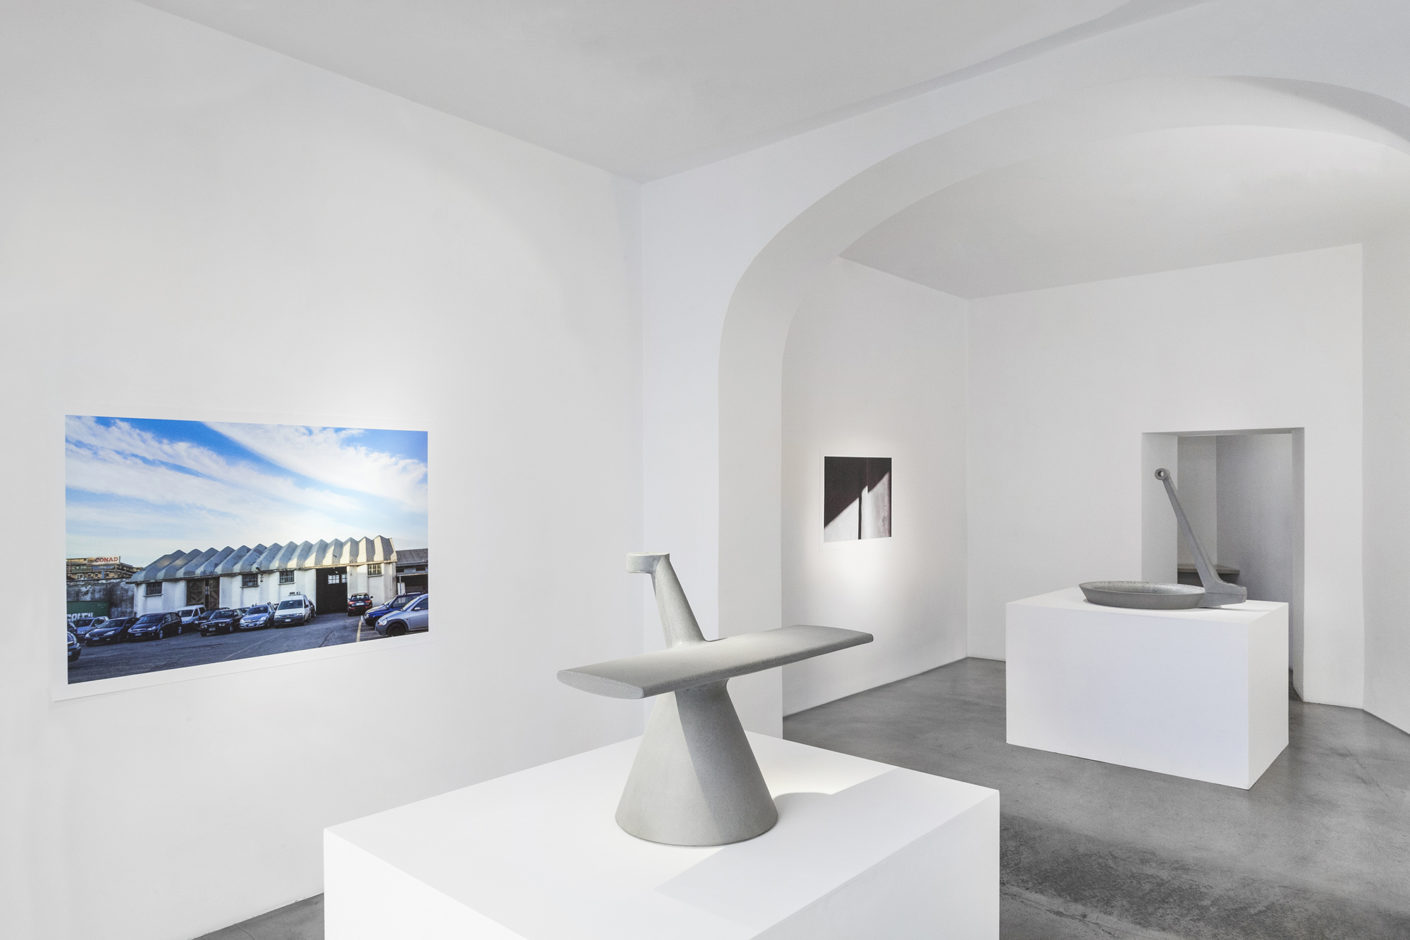 Konstantin Grcic Magliana Project Gallerie O. Rome